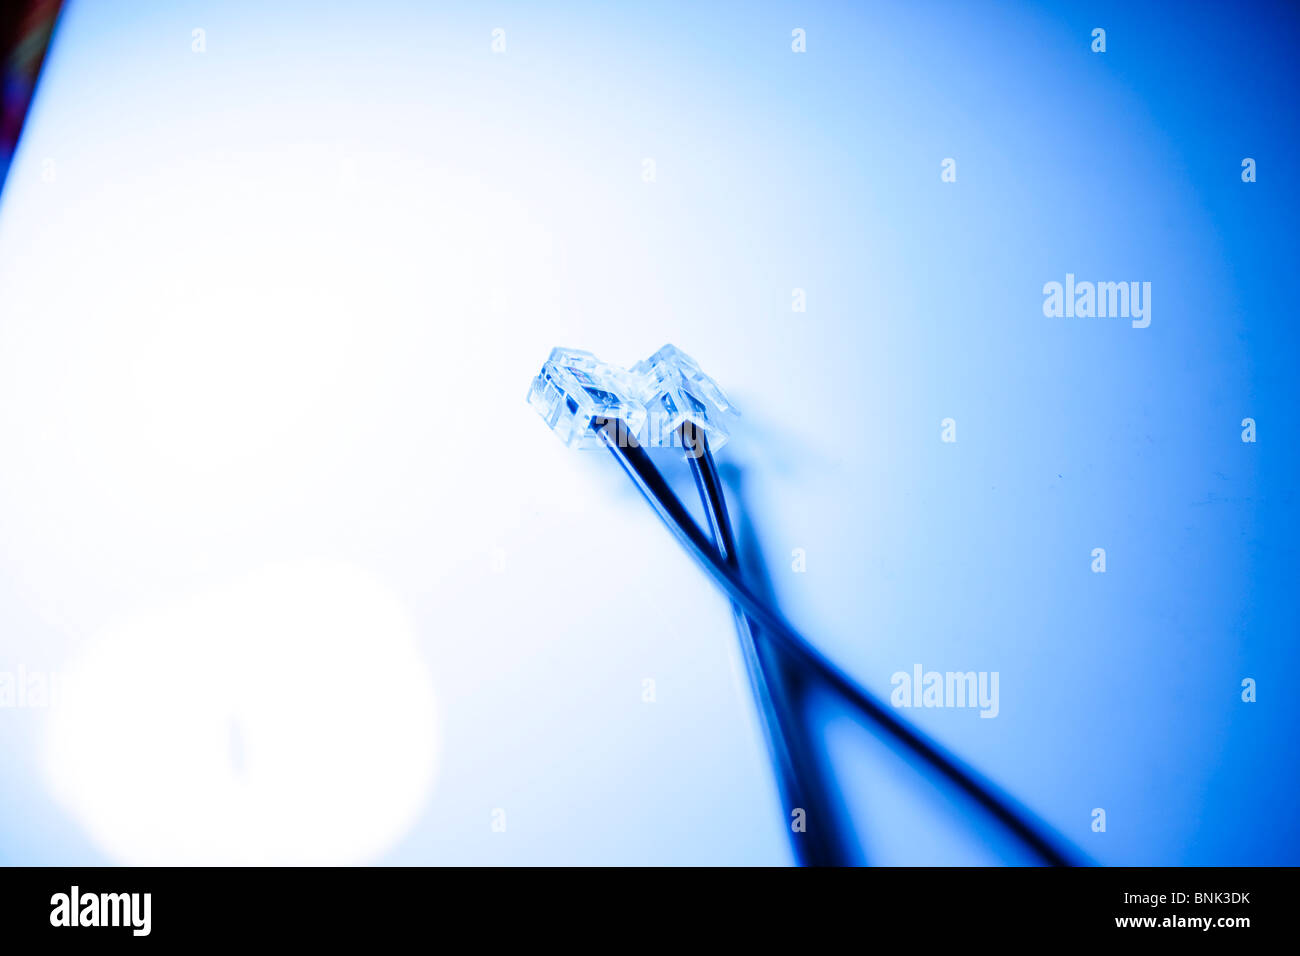 Adsl Cable Wiring Schematic Diagrams Diagram Stock Photos Images Alamy Modem